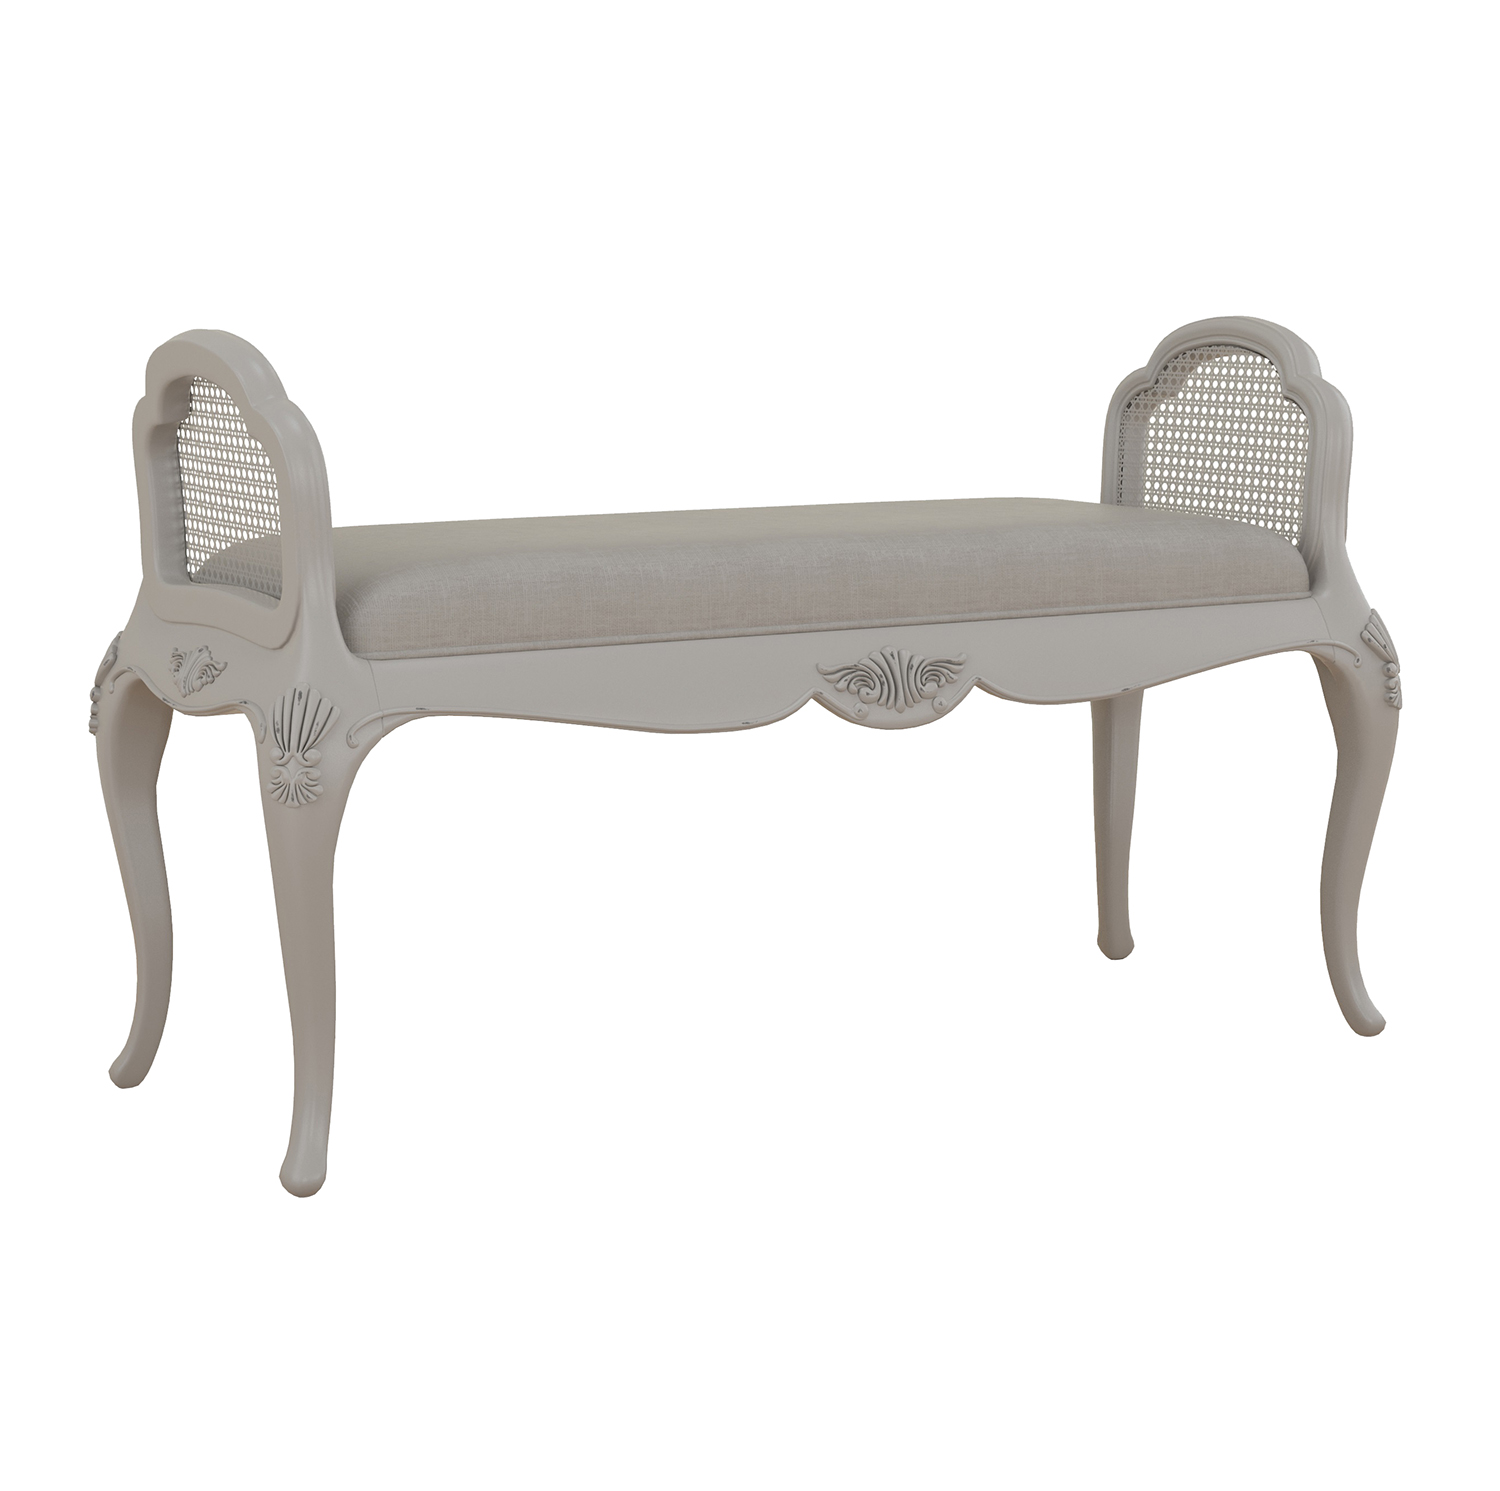 Willis & Gambier Etienne Bench